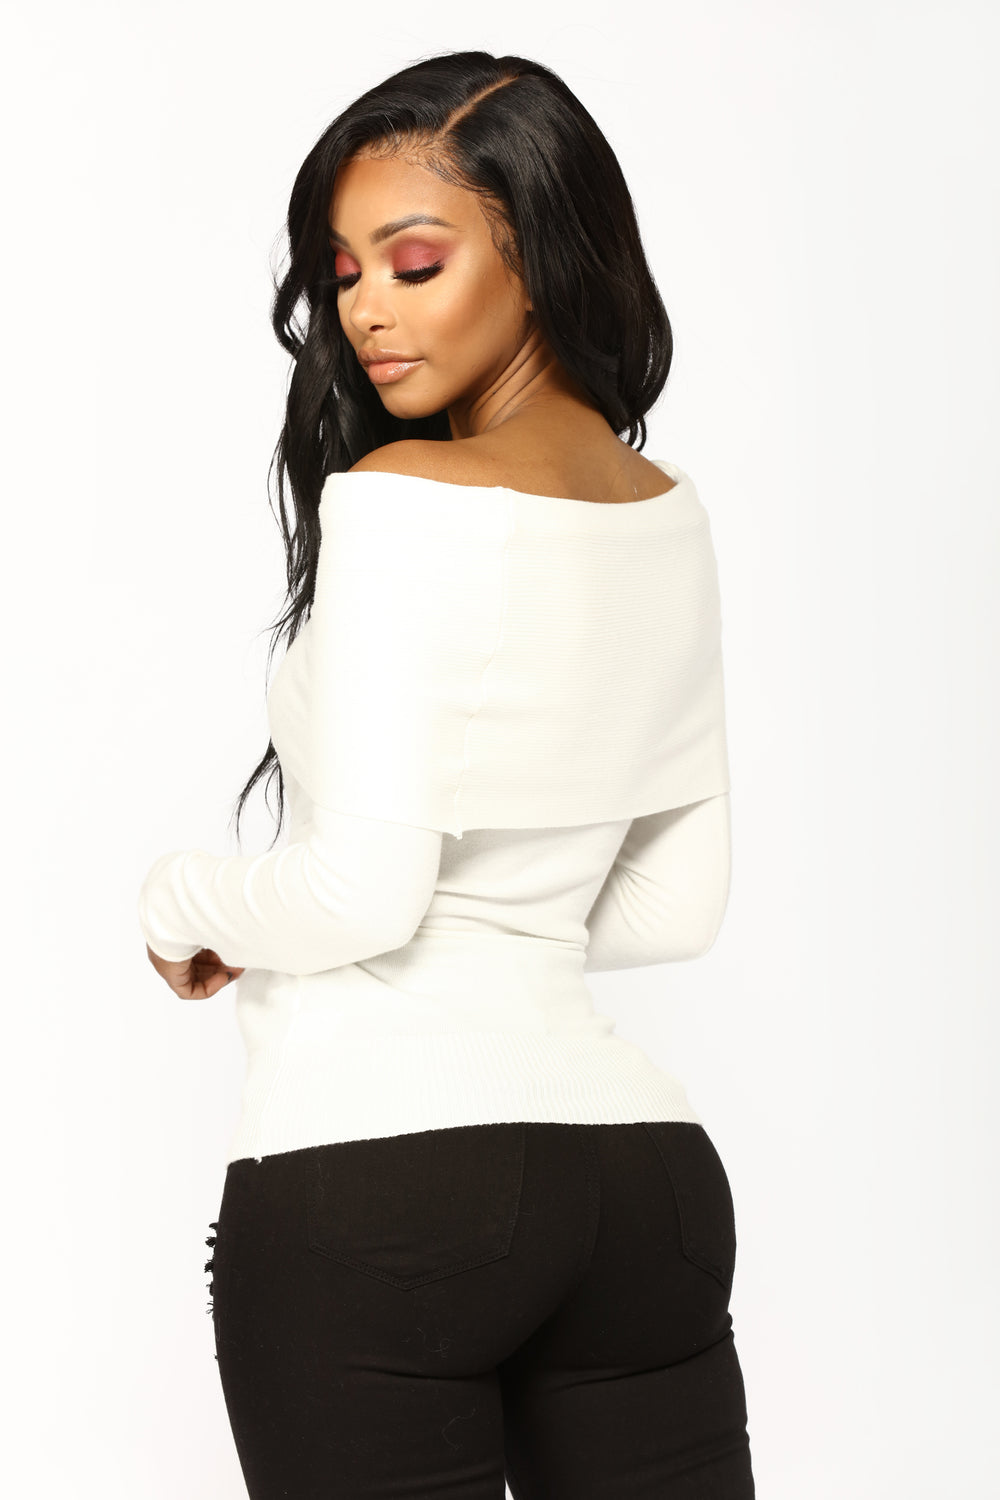 Dusting You Off The Shoulder Sweater - Ivory